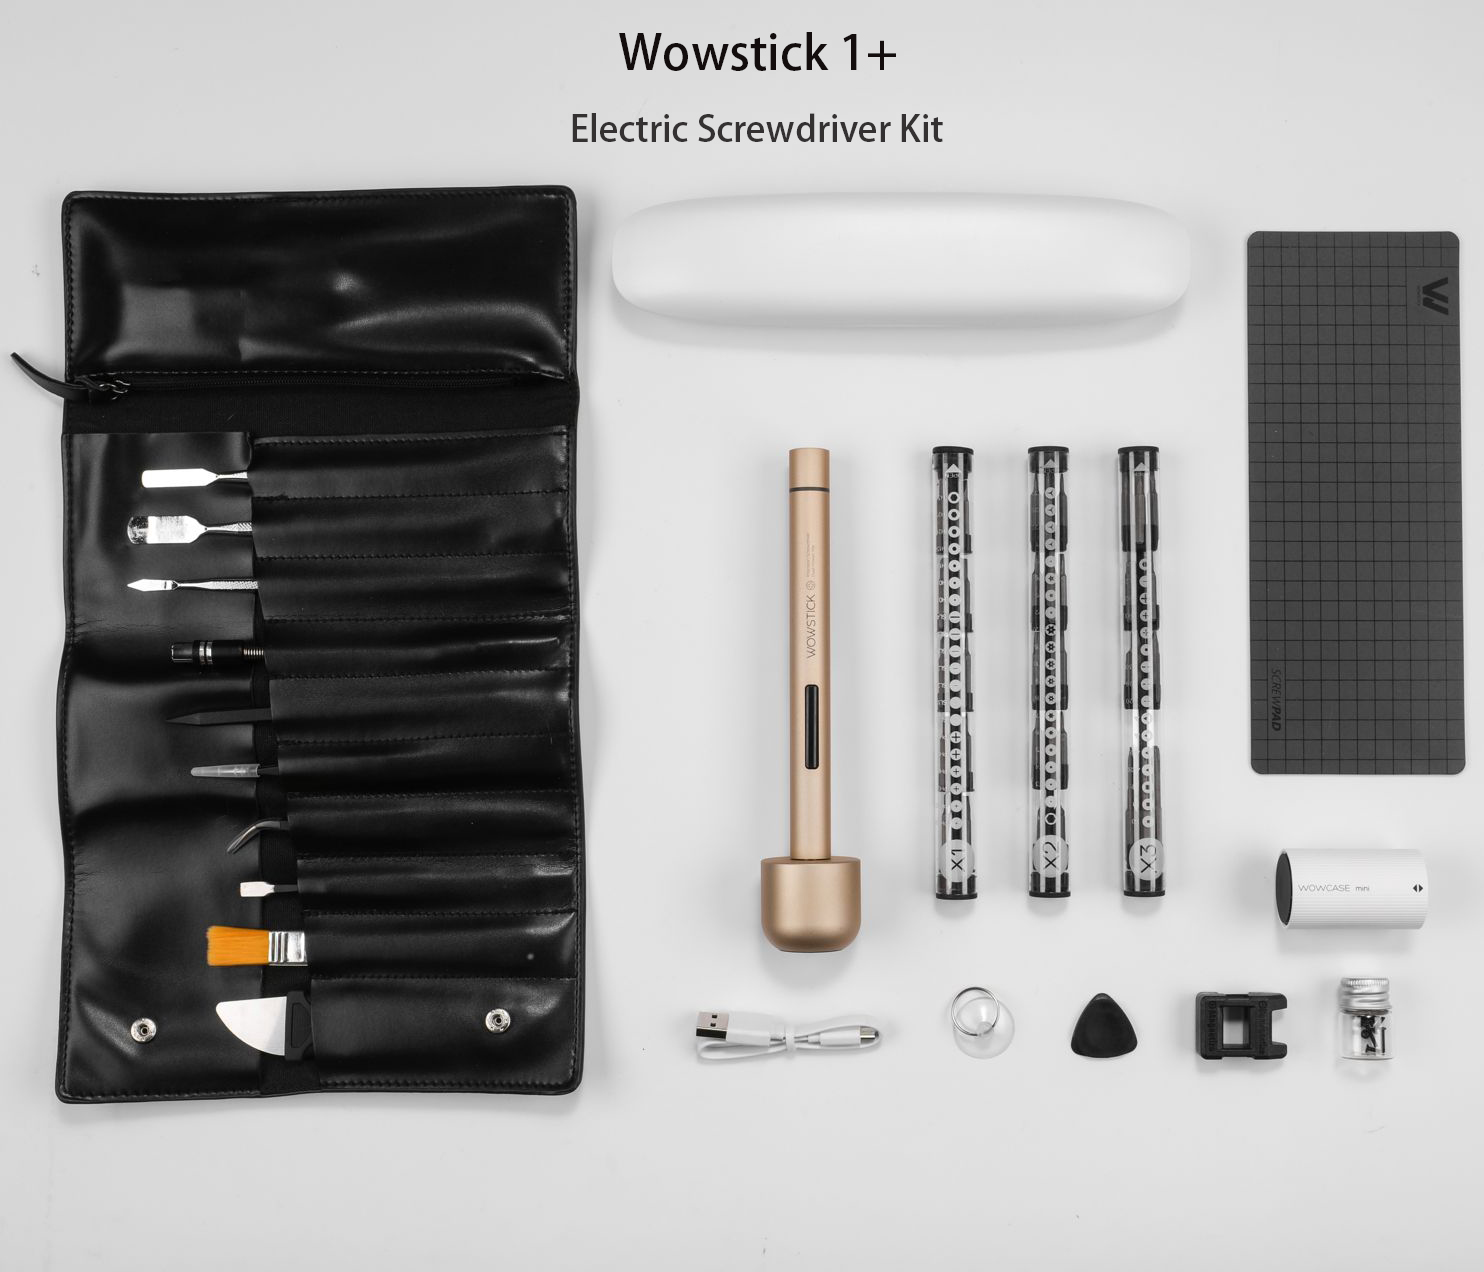 Wowstick 1+ Precision Electric Screwdriver Set Cordless Chargeable DIY Repair Tools Kit